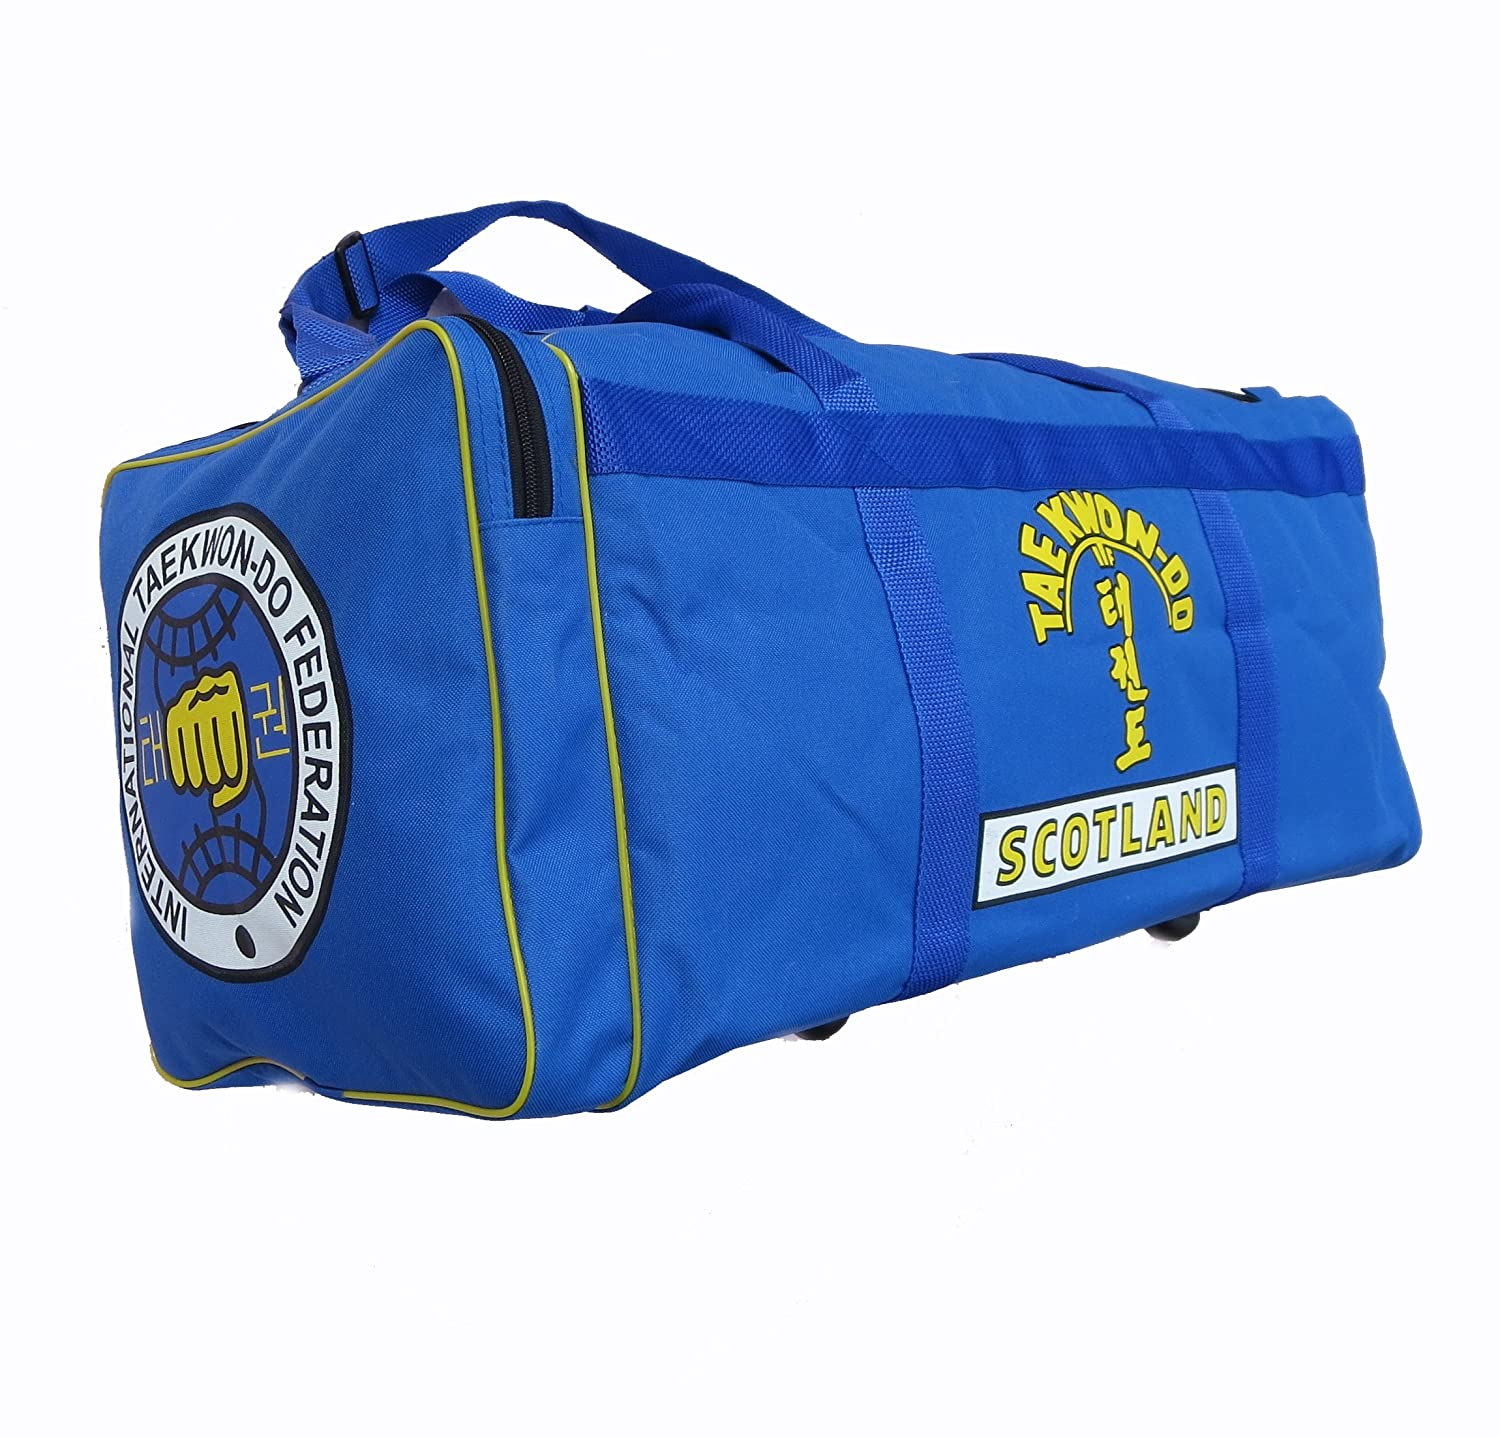 ITF Taekwondo Holdall - Limited Edition Scotland Bag Sportsupply.org